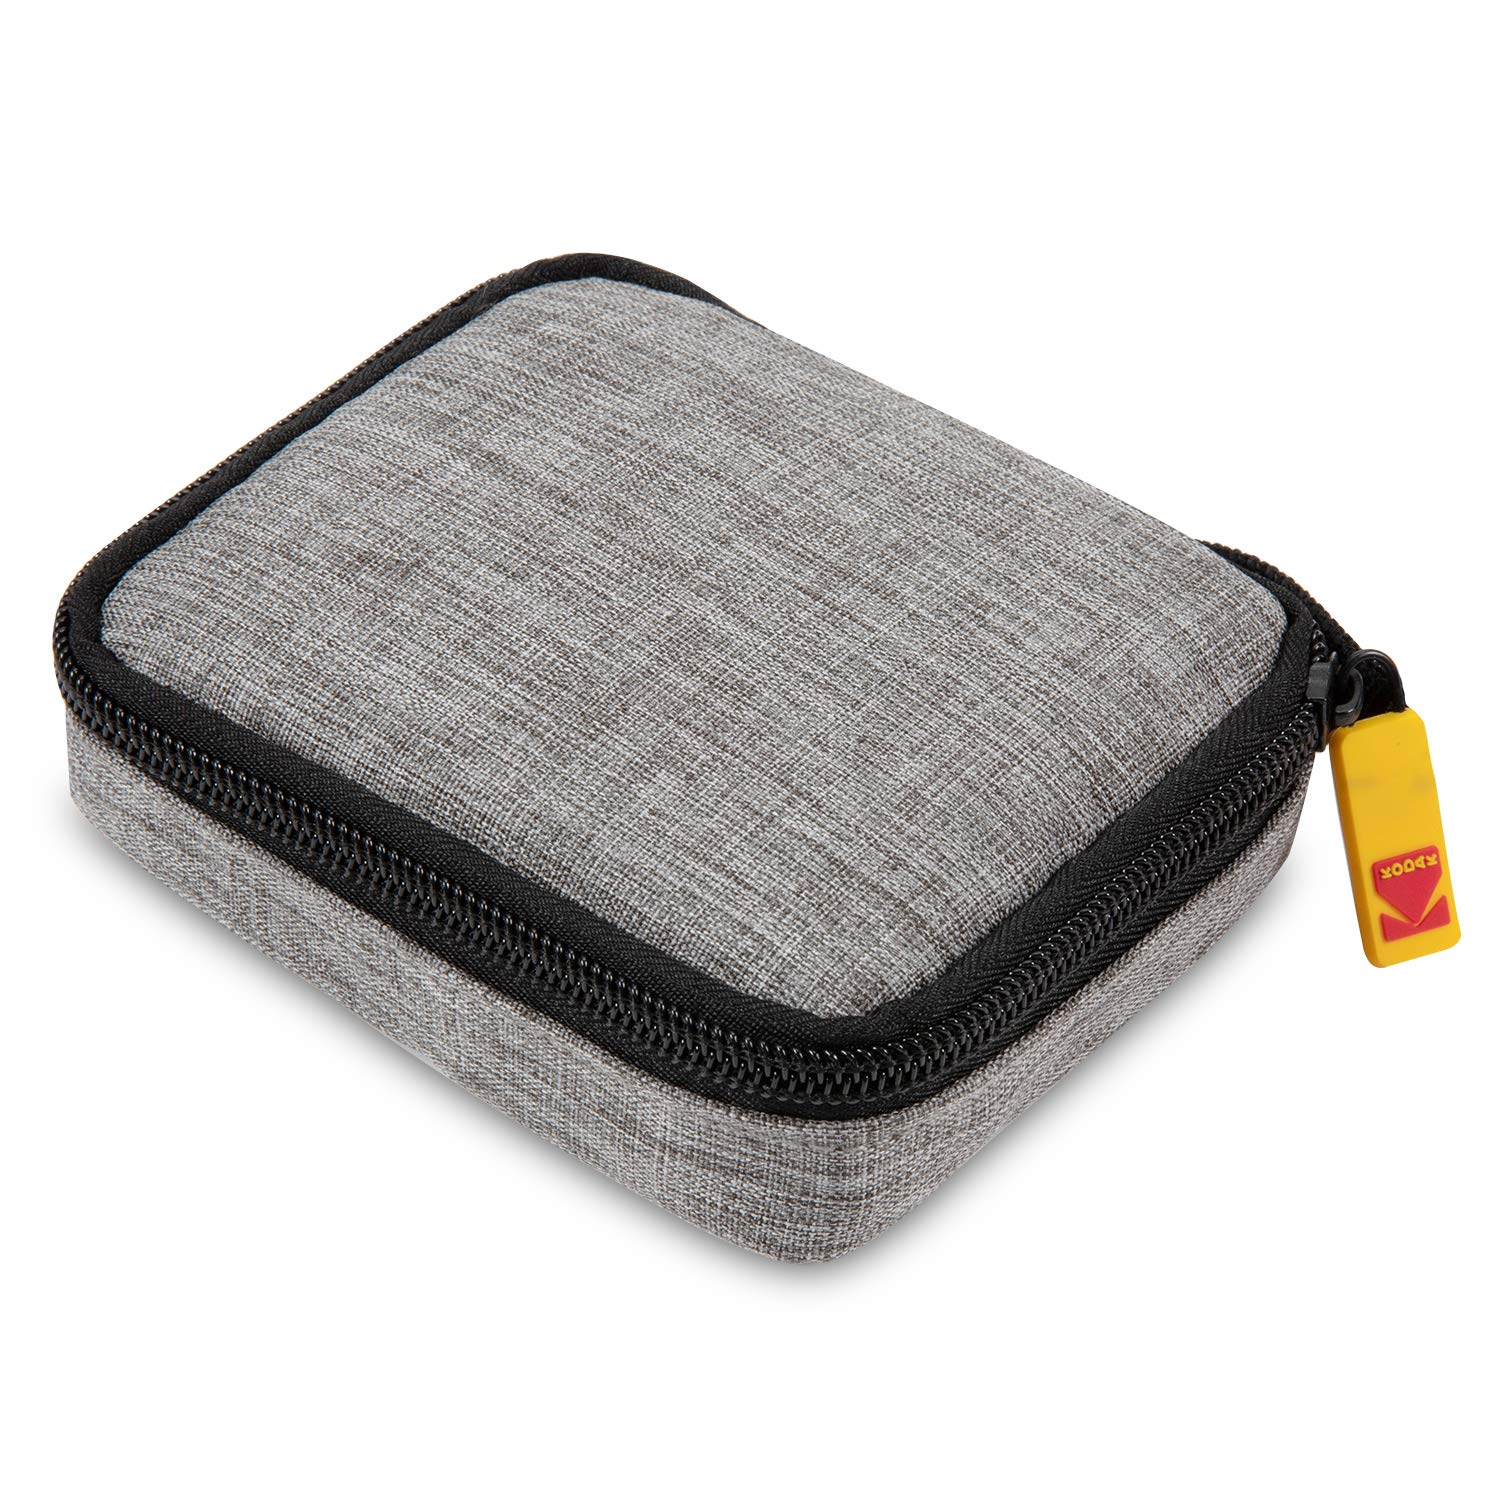 Kodak Projector Case Case Also Features Easy Carry Hand Strap & Built-in Pockets for Accessories by KODAK